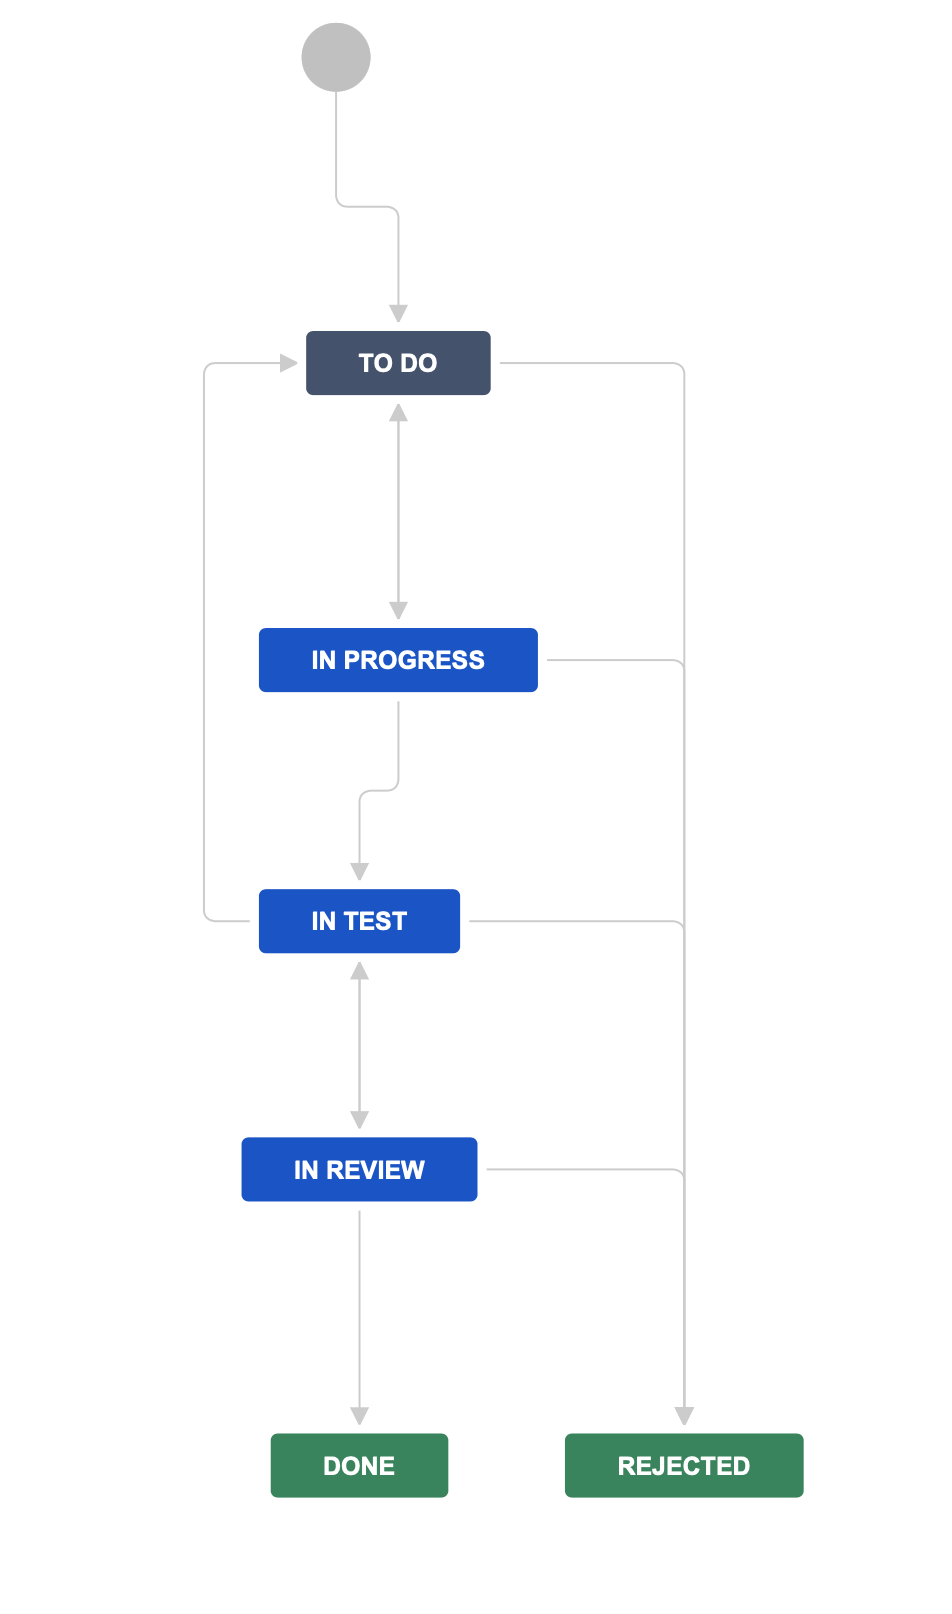 ../_images/jira-workflow-progress,test,review.png